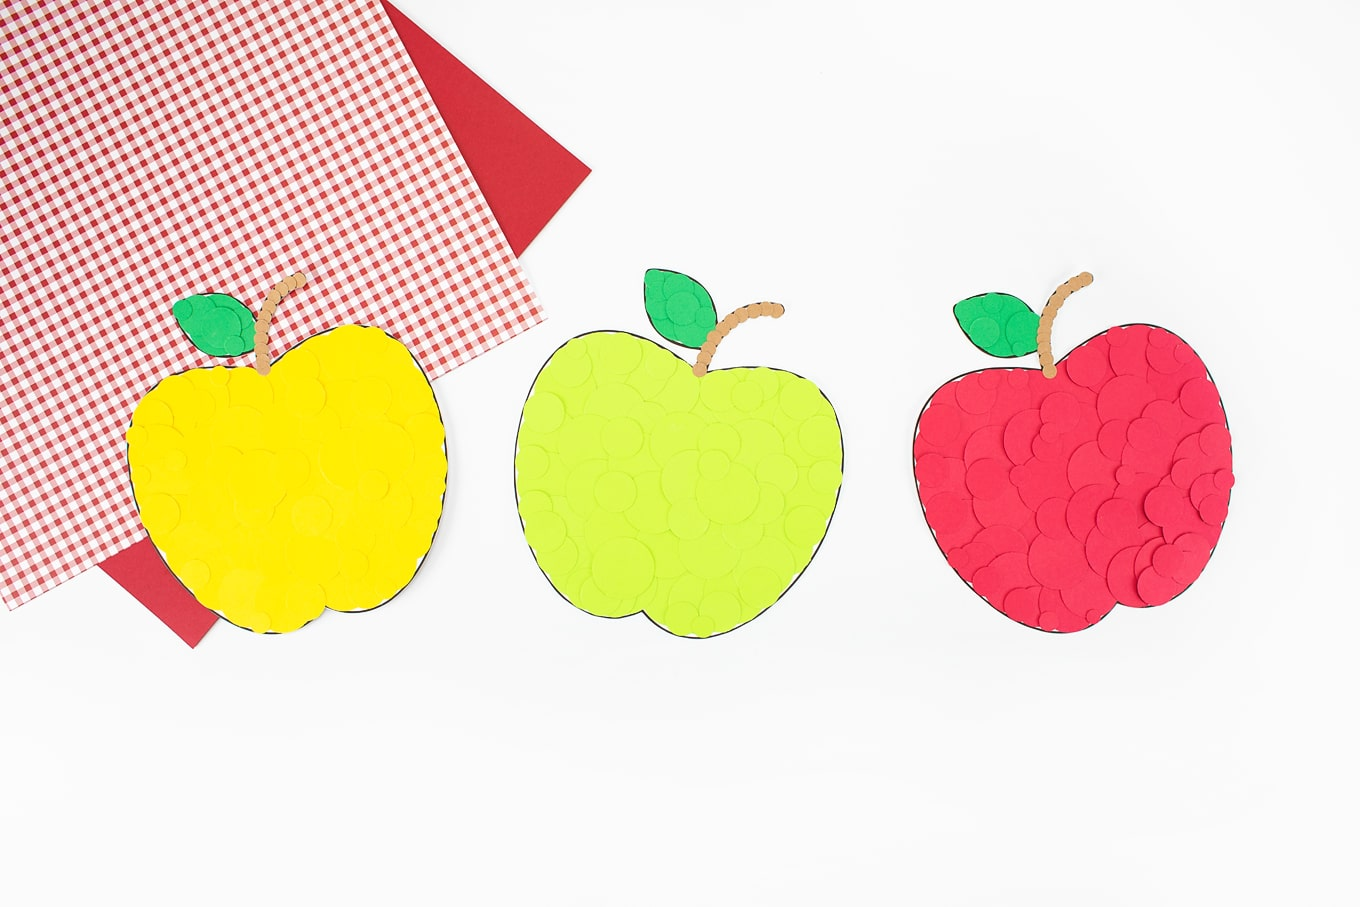 Yellow, Green, and Red Paper Apples